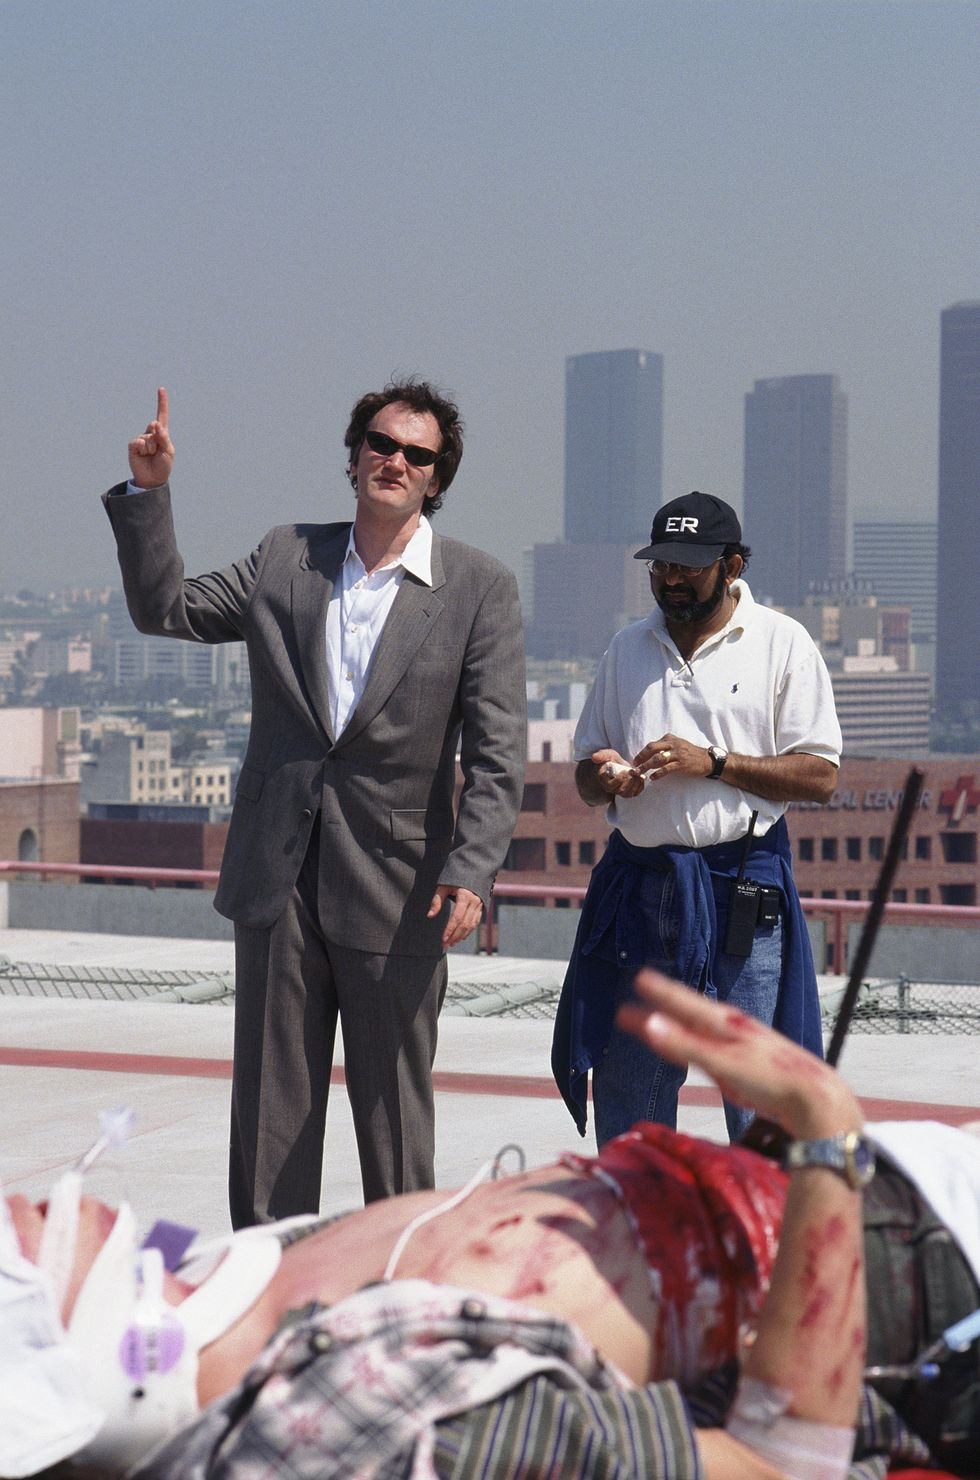 ER (1995) Tarantino gives direction on a rooftop on the set of ER. George Clooney reportedly asked for Tarantino to direct an episode of the show after he starred in the director's film, From Dusk Till Dawn.